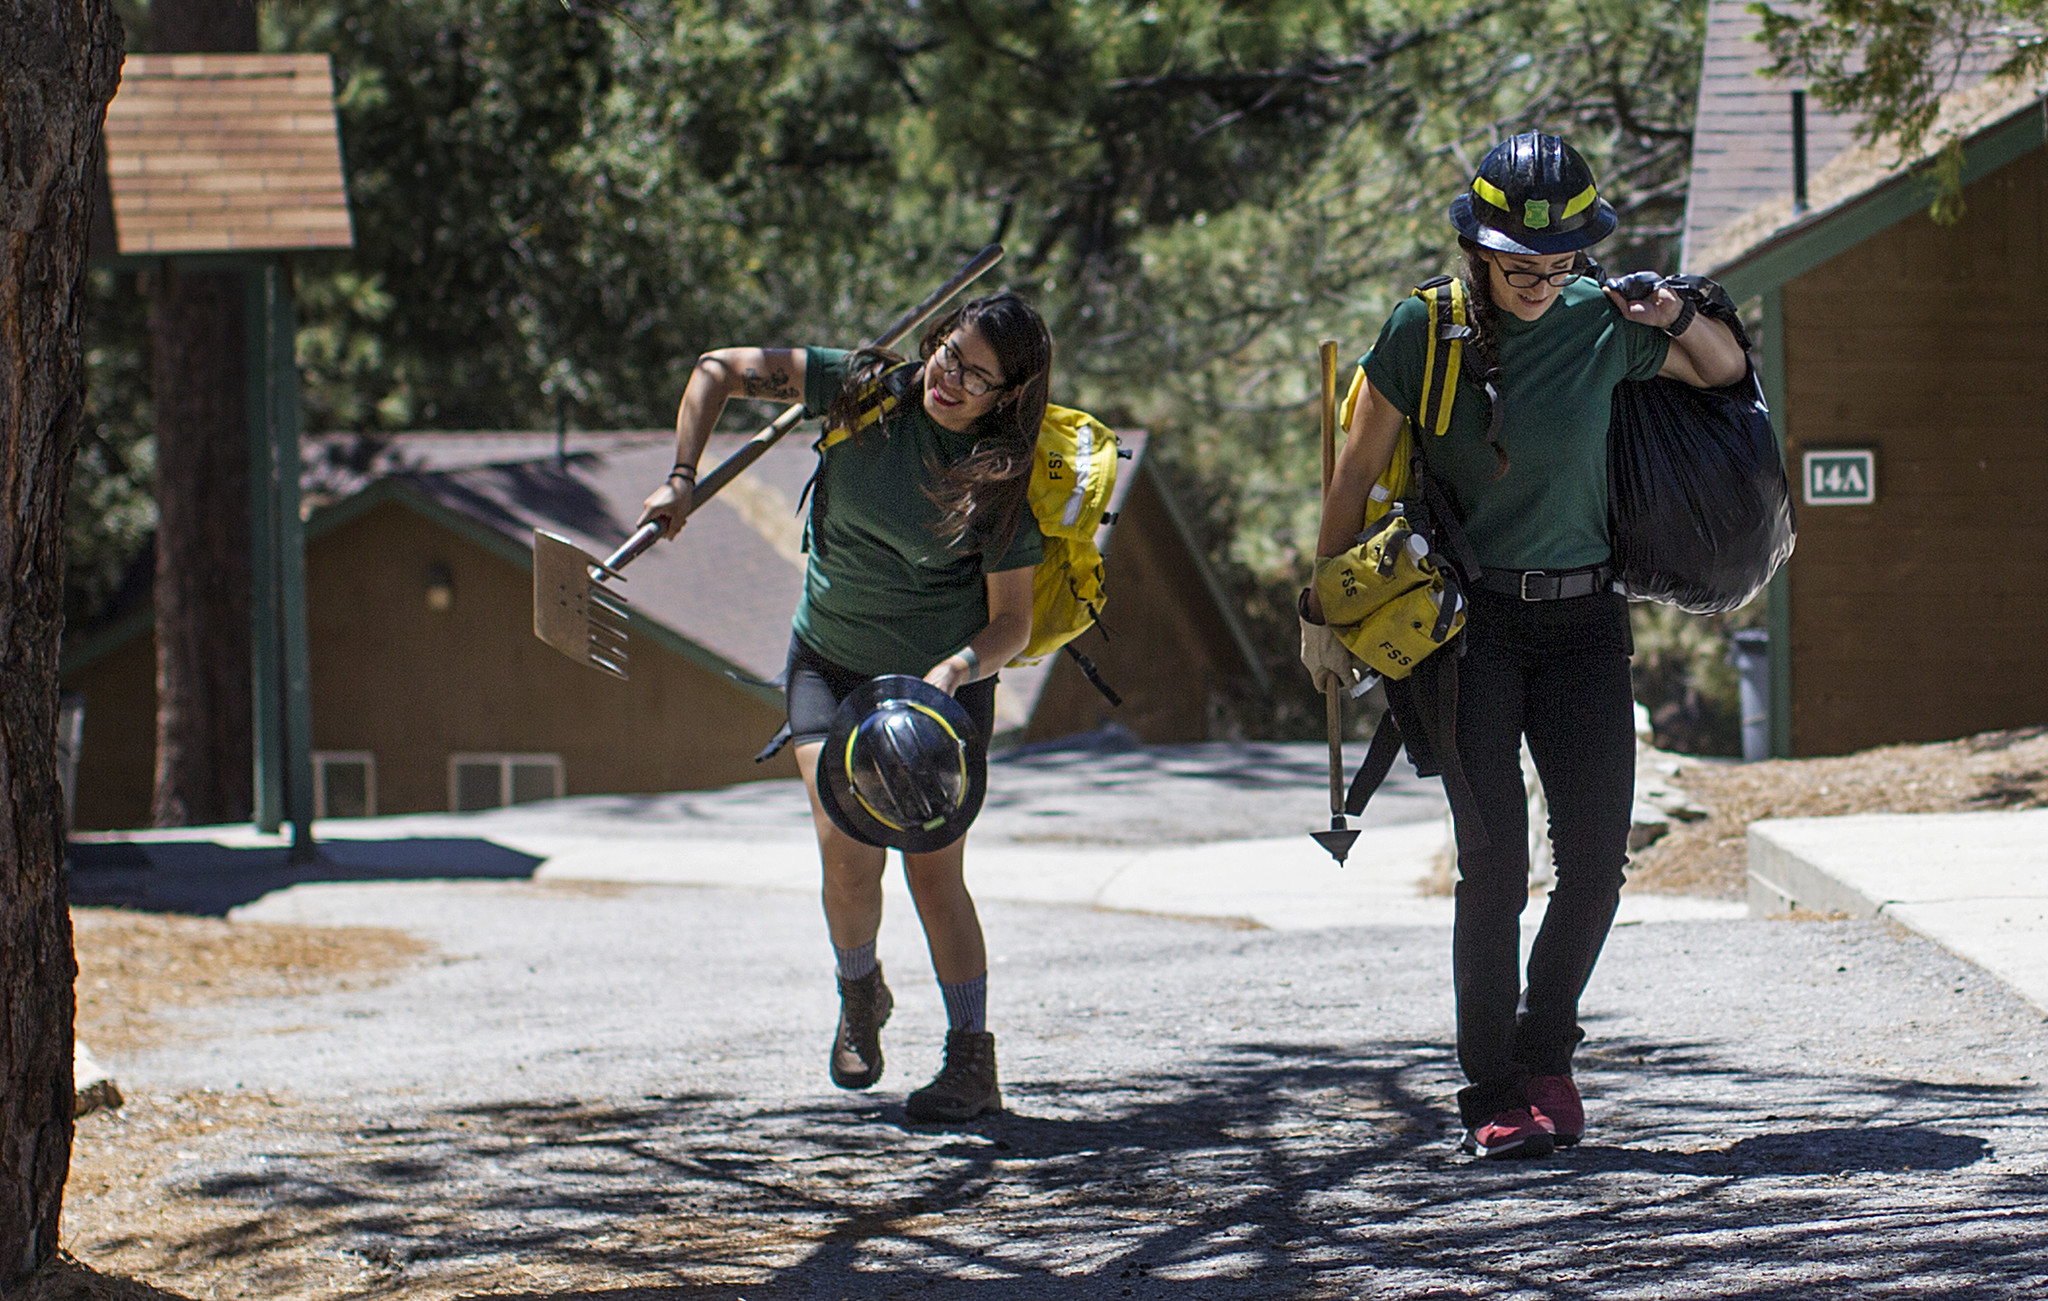 L.A. art teacher Estephany Campos, left, and Inglewood sales clerk Kelsey Almendariz pack up their hand tools after graduating from the Women in Wildland Fire Basic Training Camp.